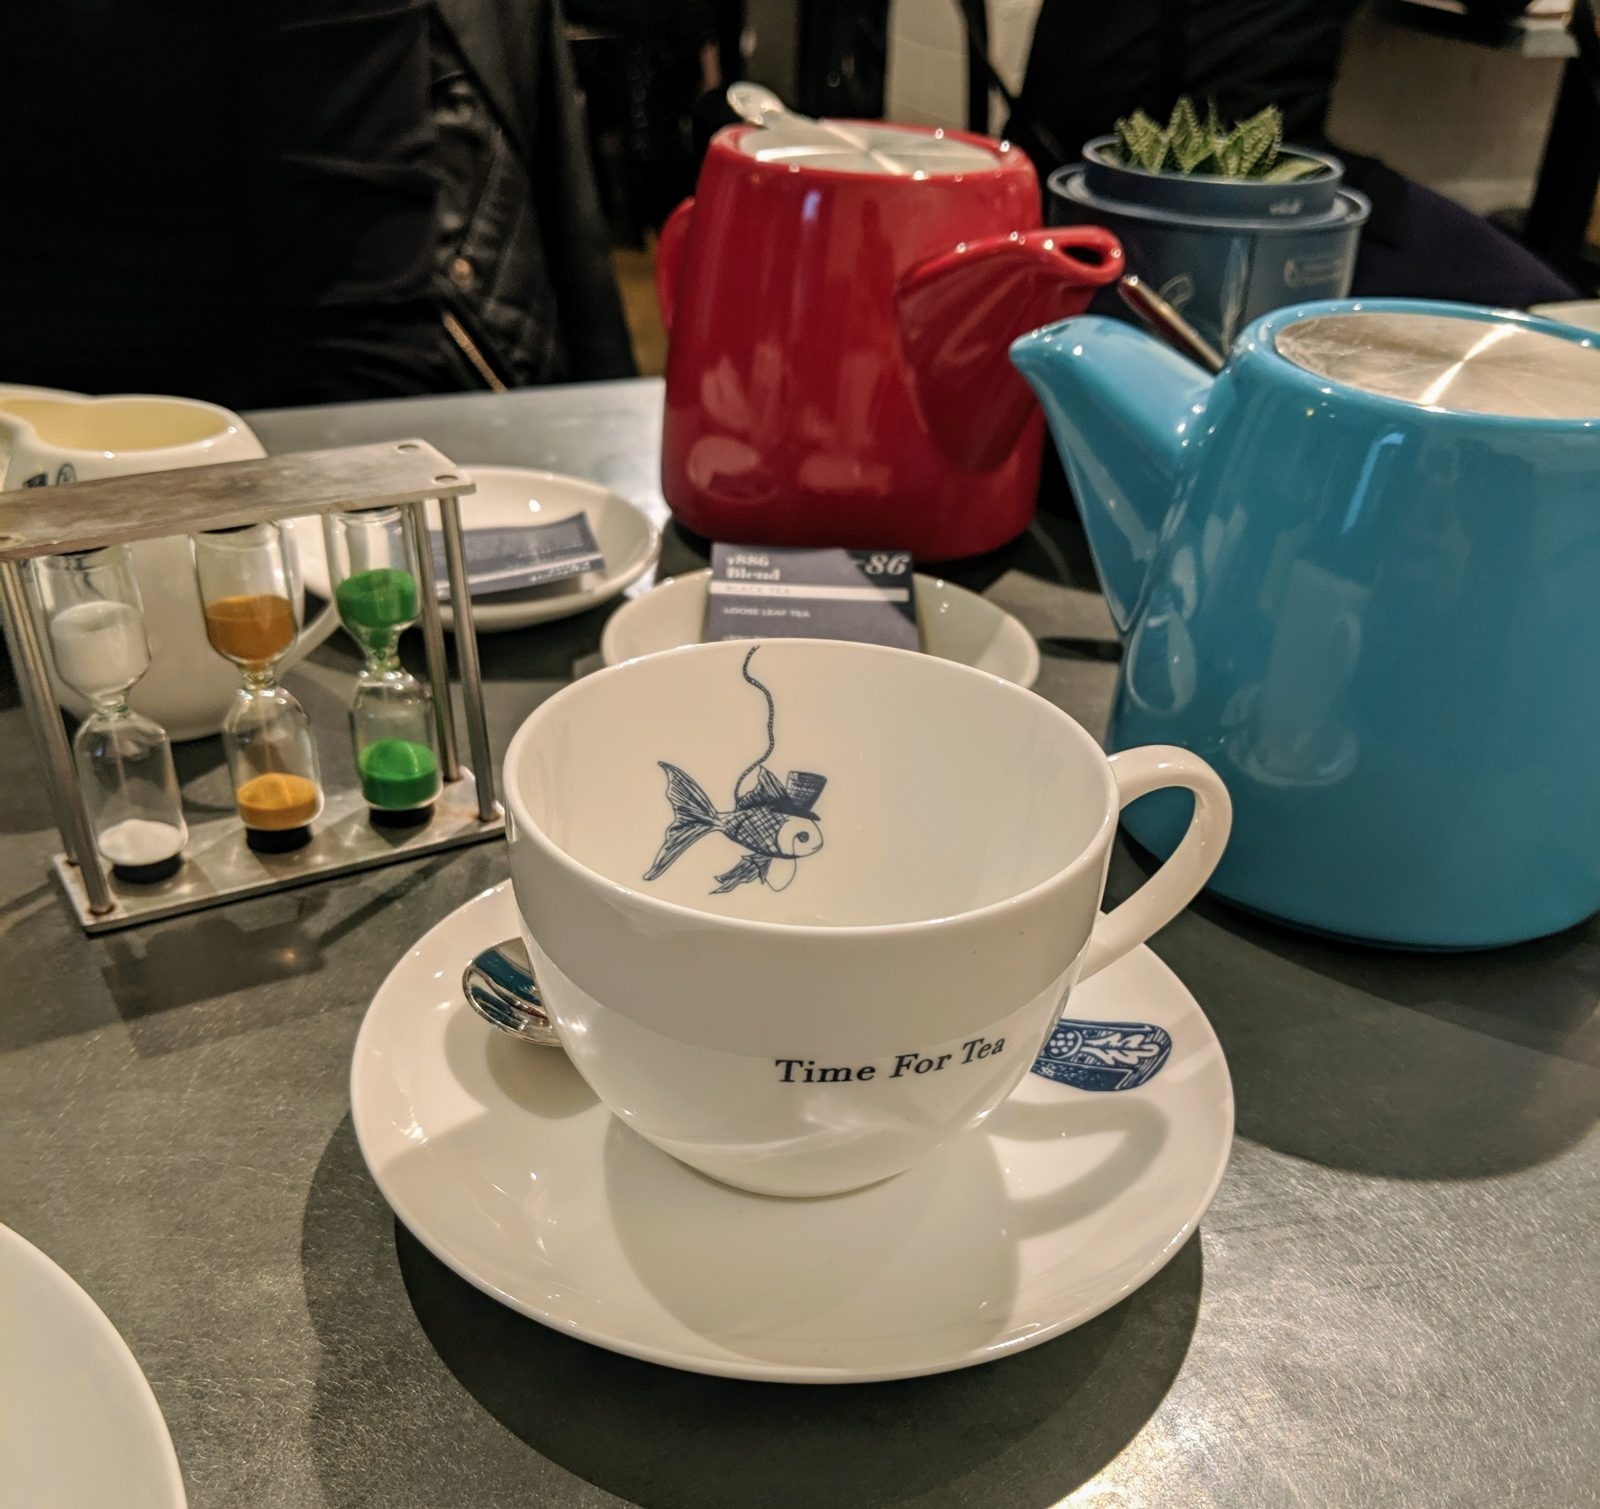 A cup that reads time for tea and a blue teapot